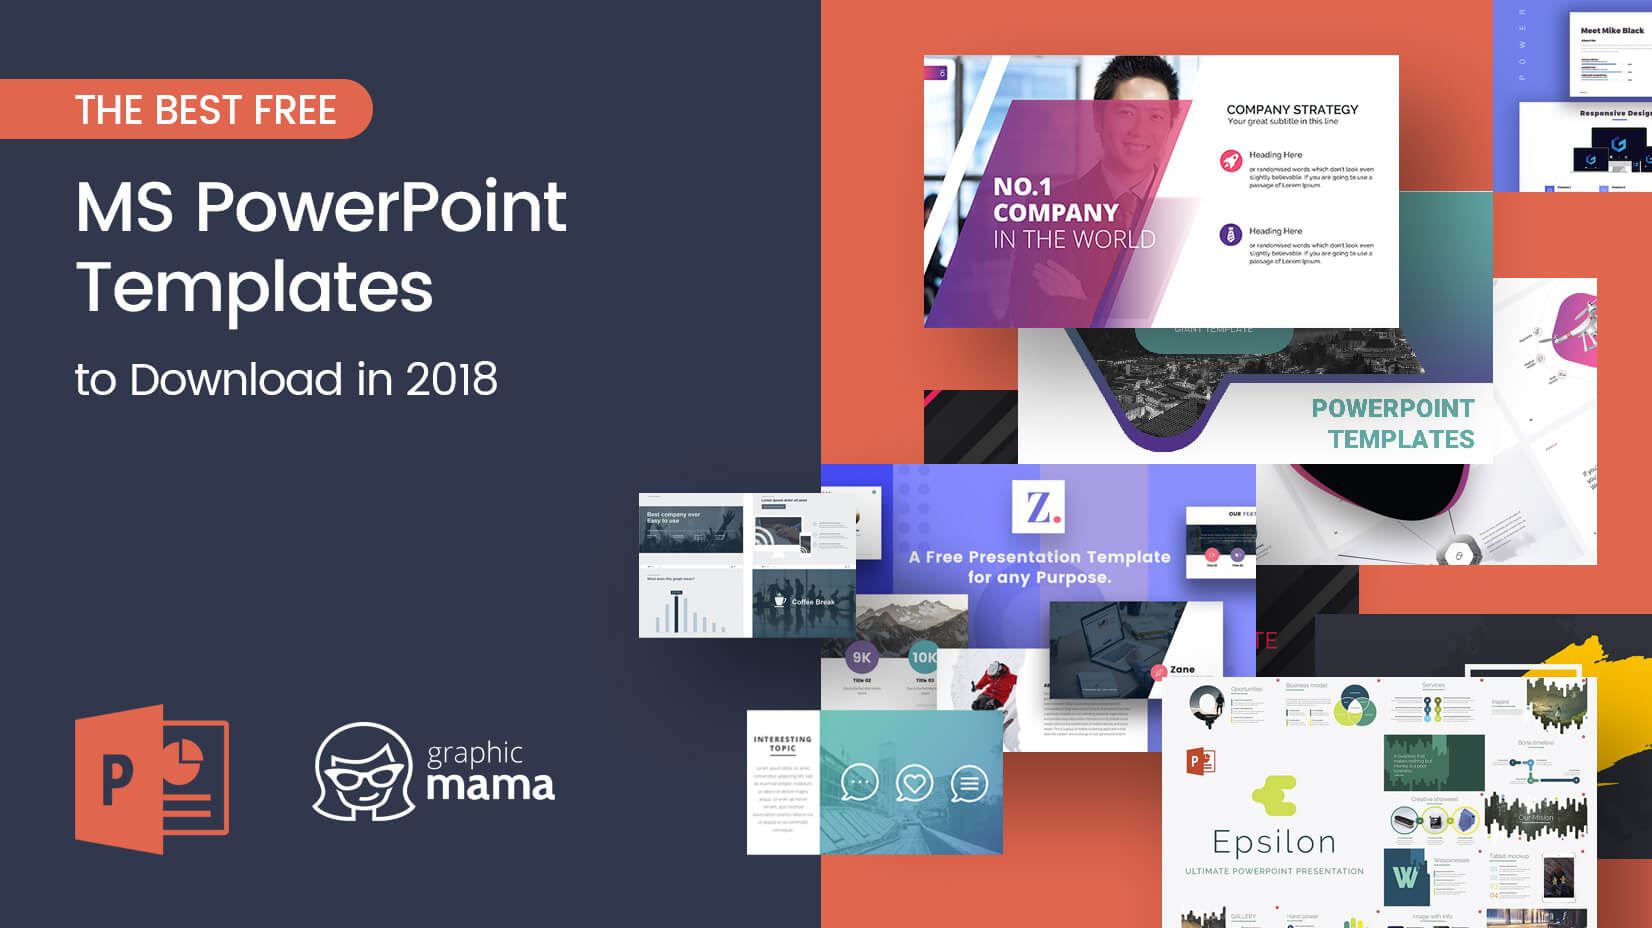 The best free powerpoint templates to download in 2018 graphicmama the best free powerpoint templates to download in 2018 cheaphphosting Choice Image